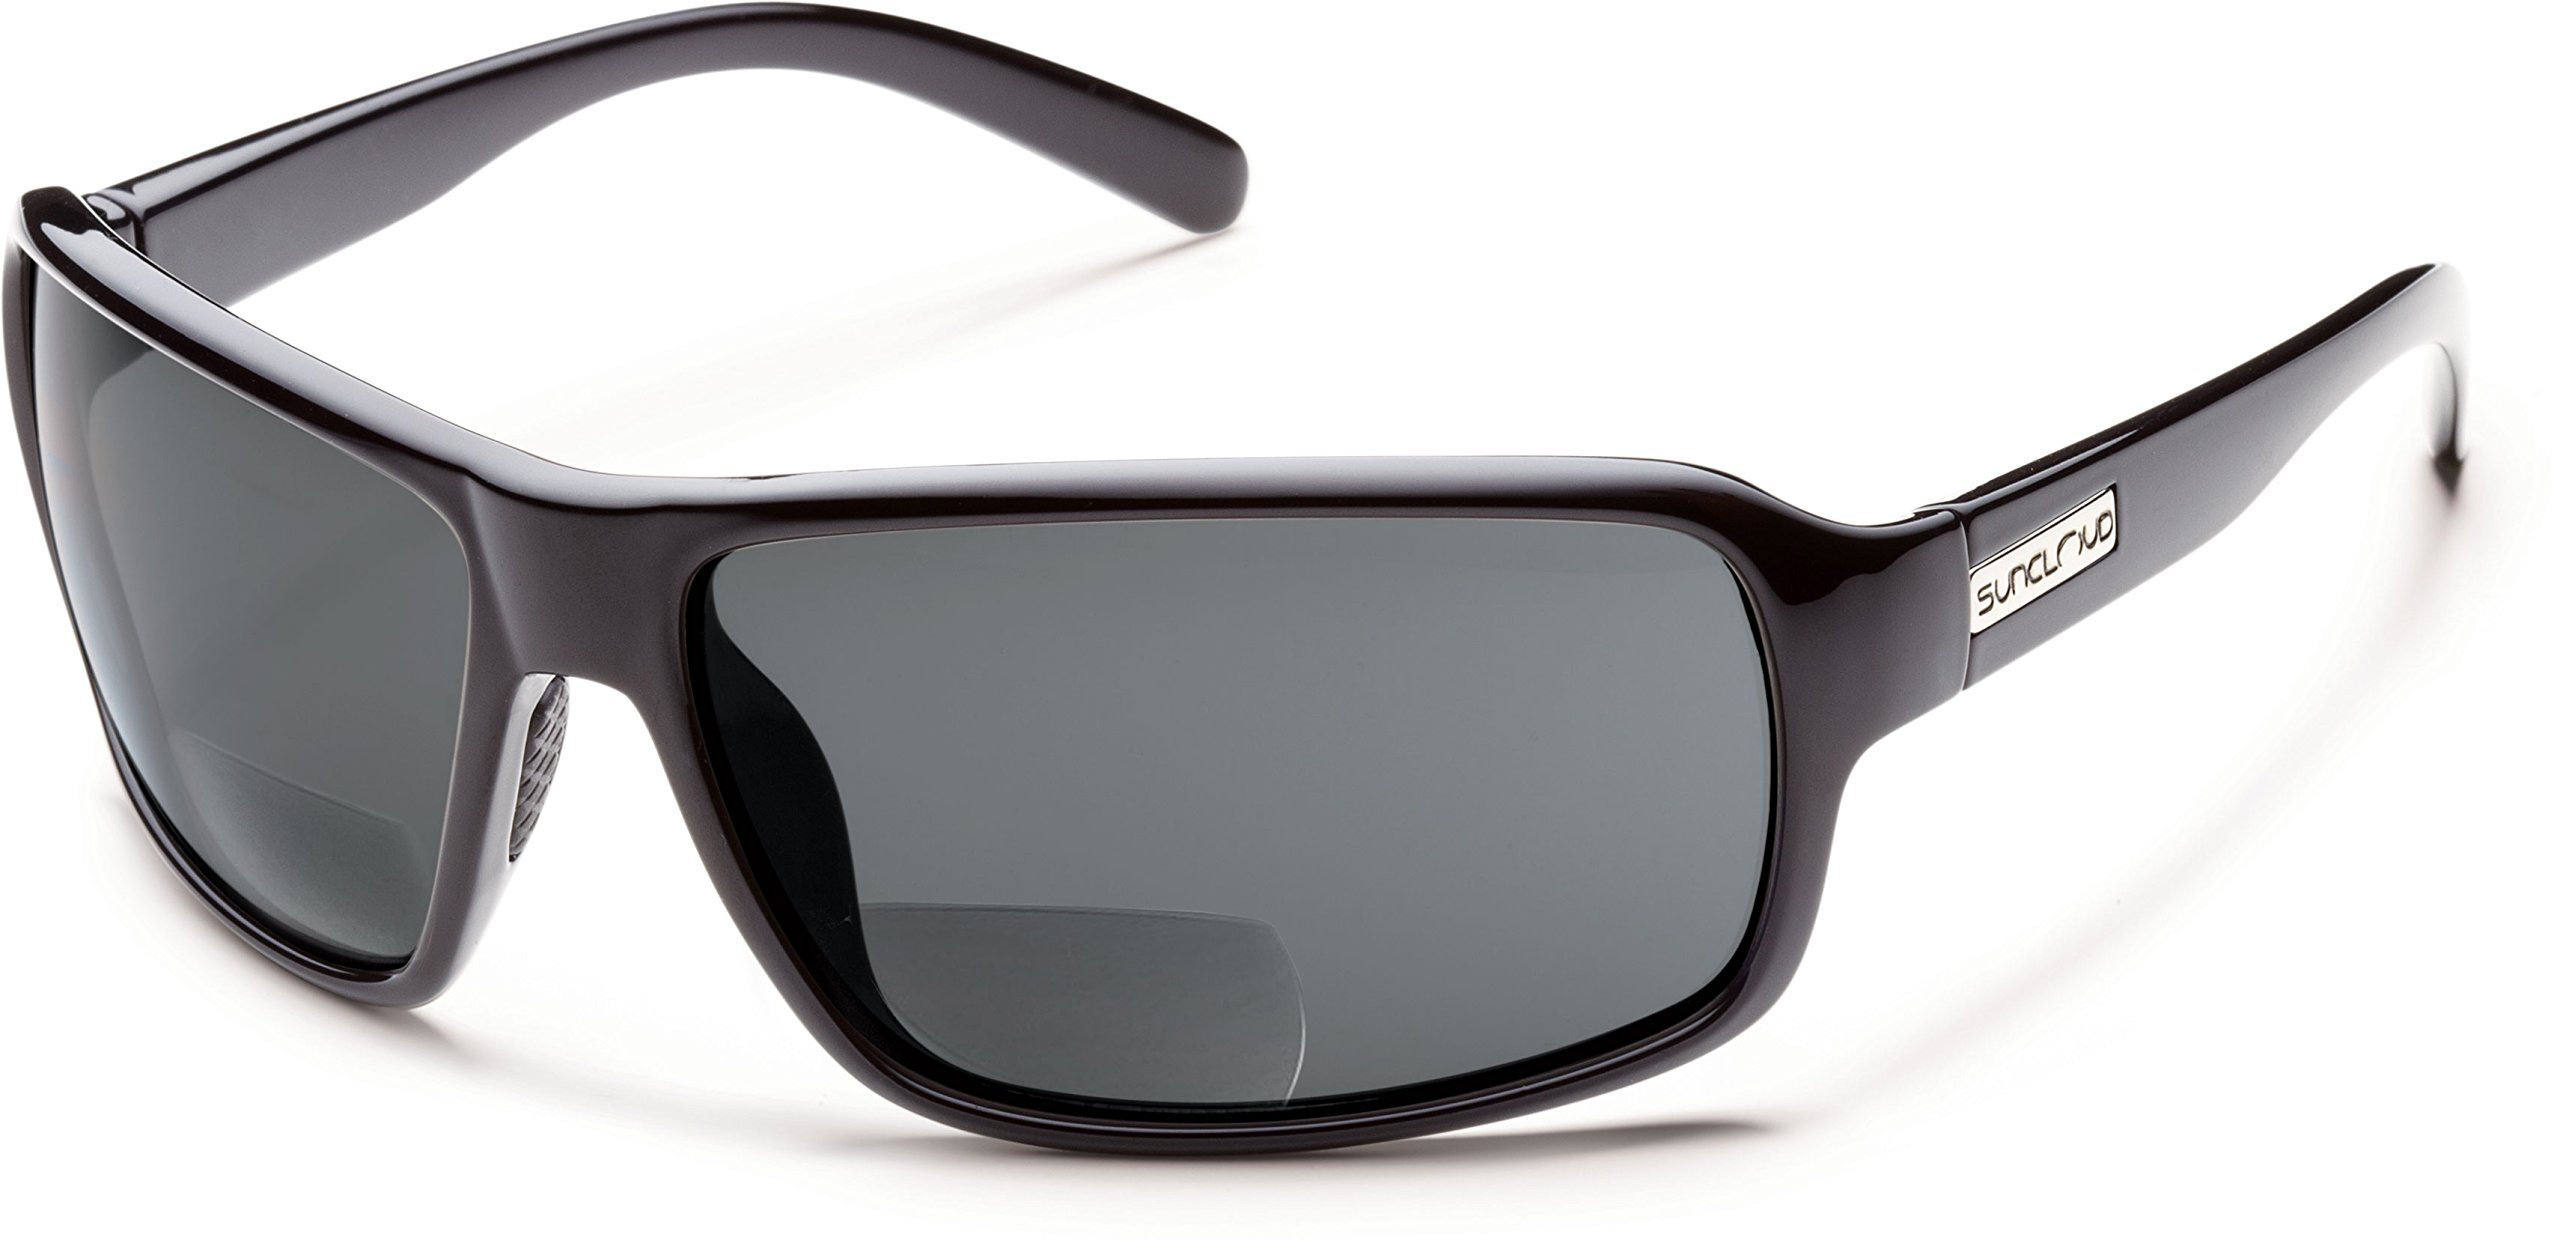 Suncloud Tailgate Polarized Bi-Focal Reading Sunglasses in Black w/ Grey Lens +2.25 by Suncloud